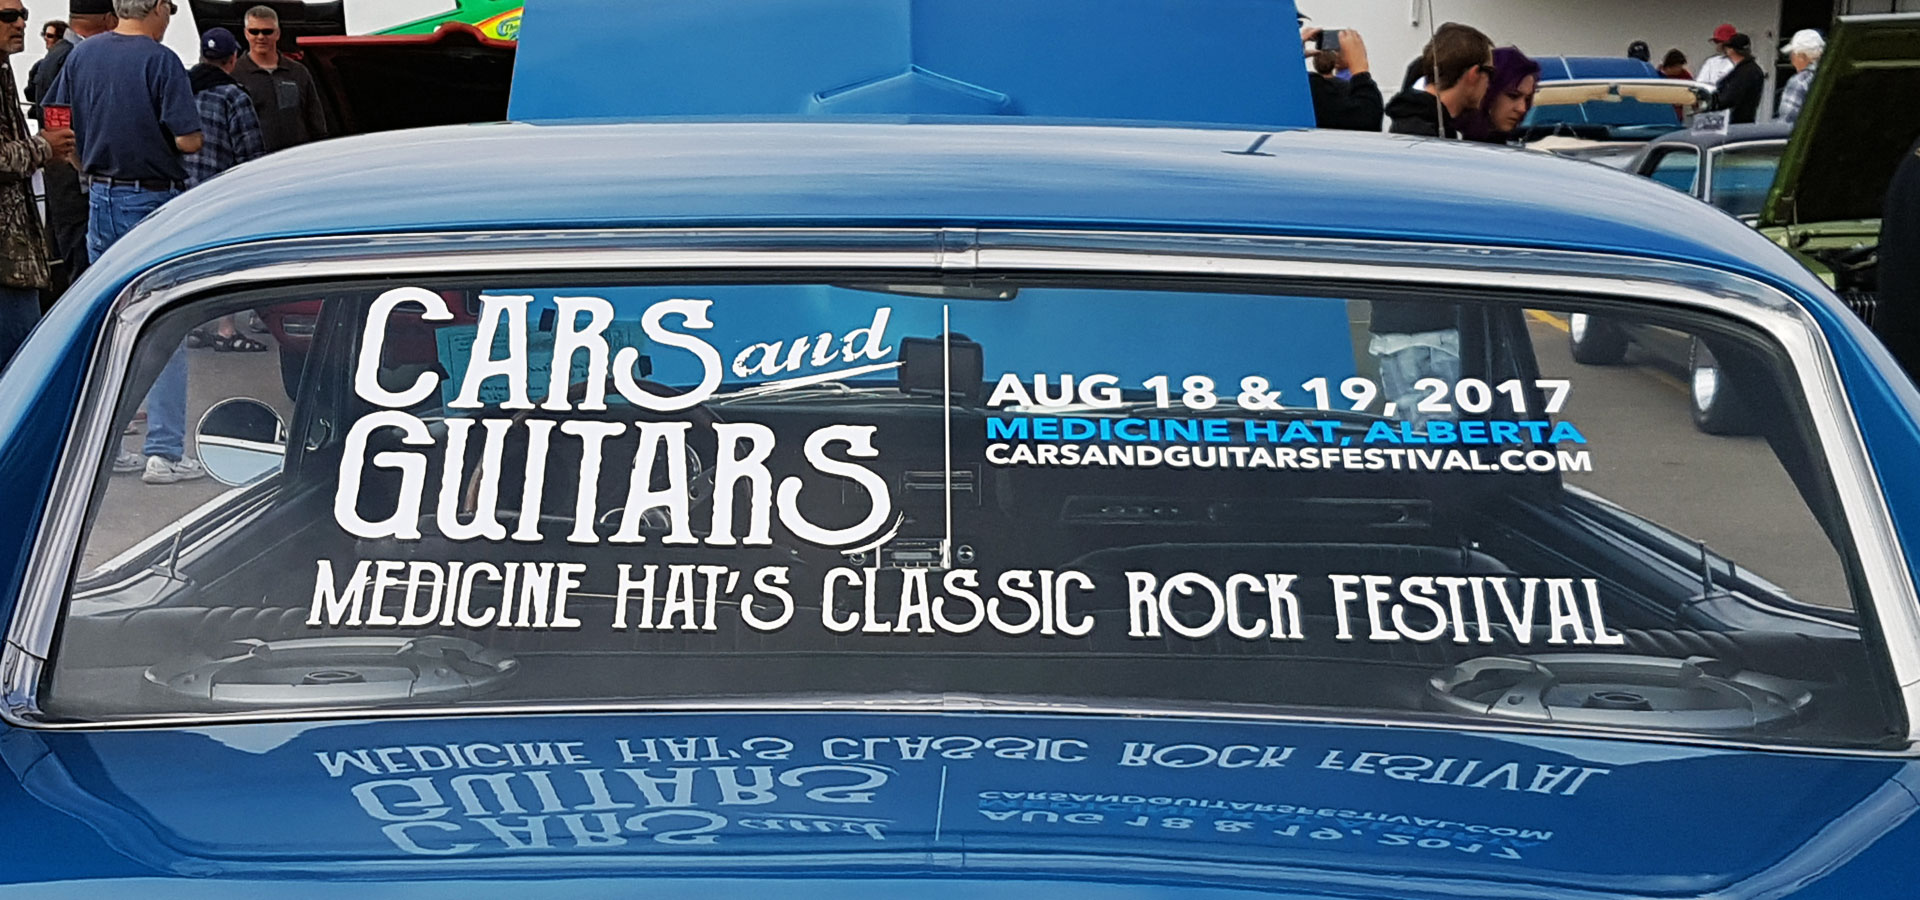 Cars and Guitars Festival